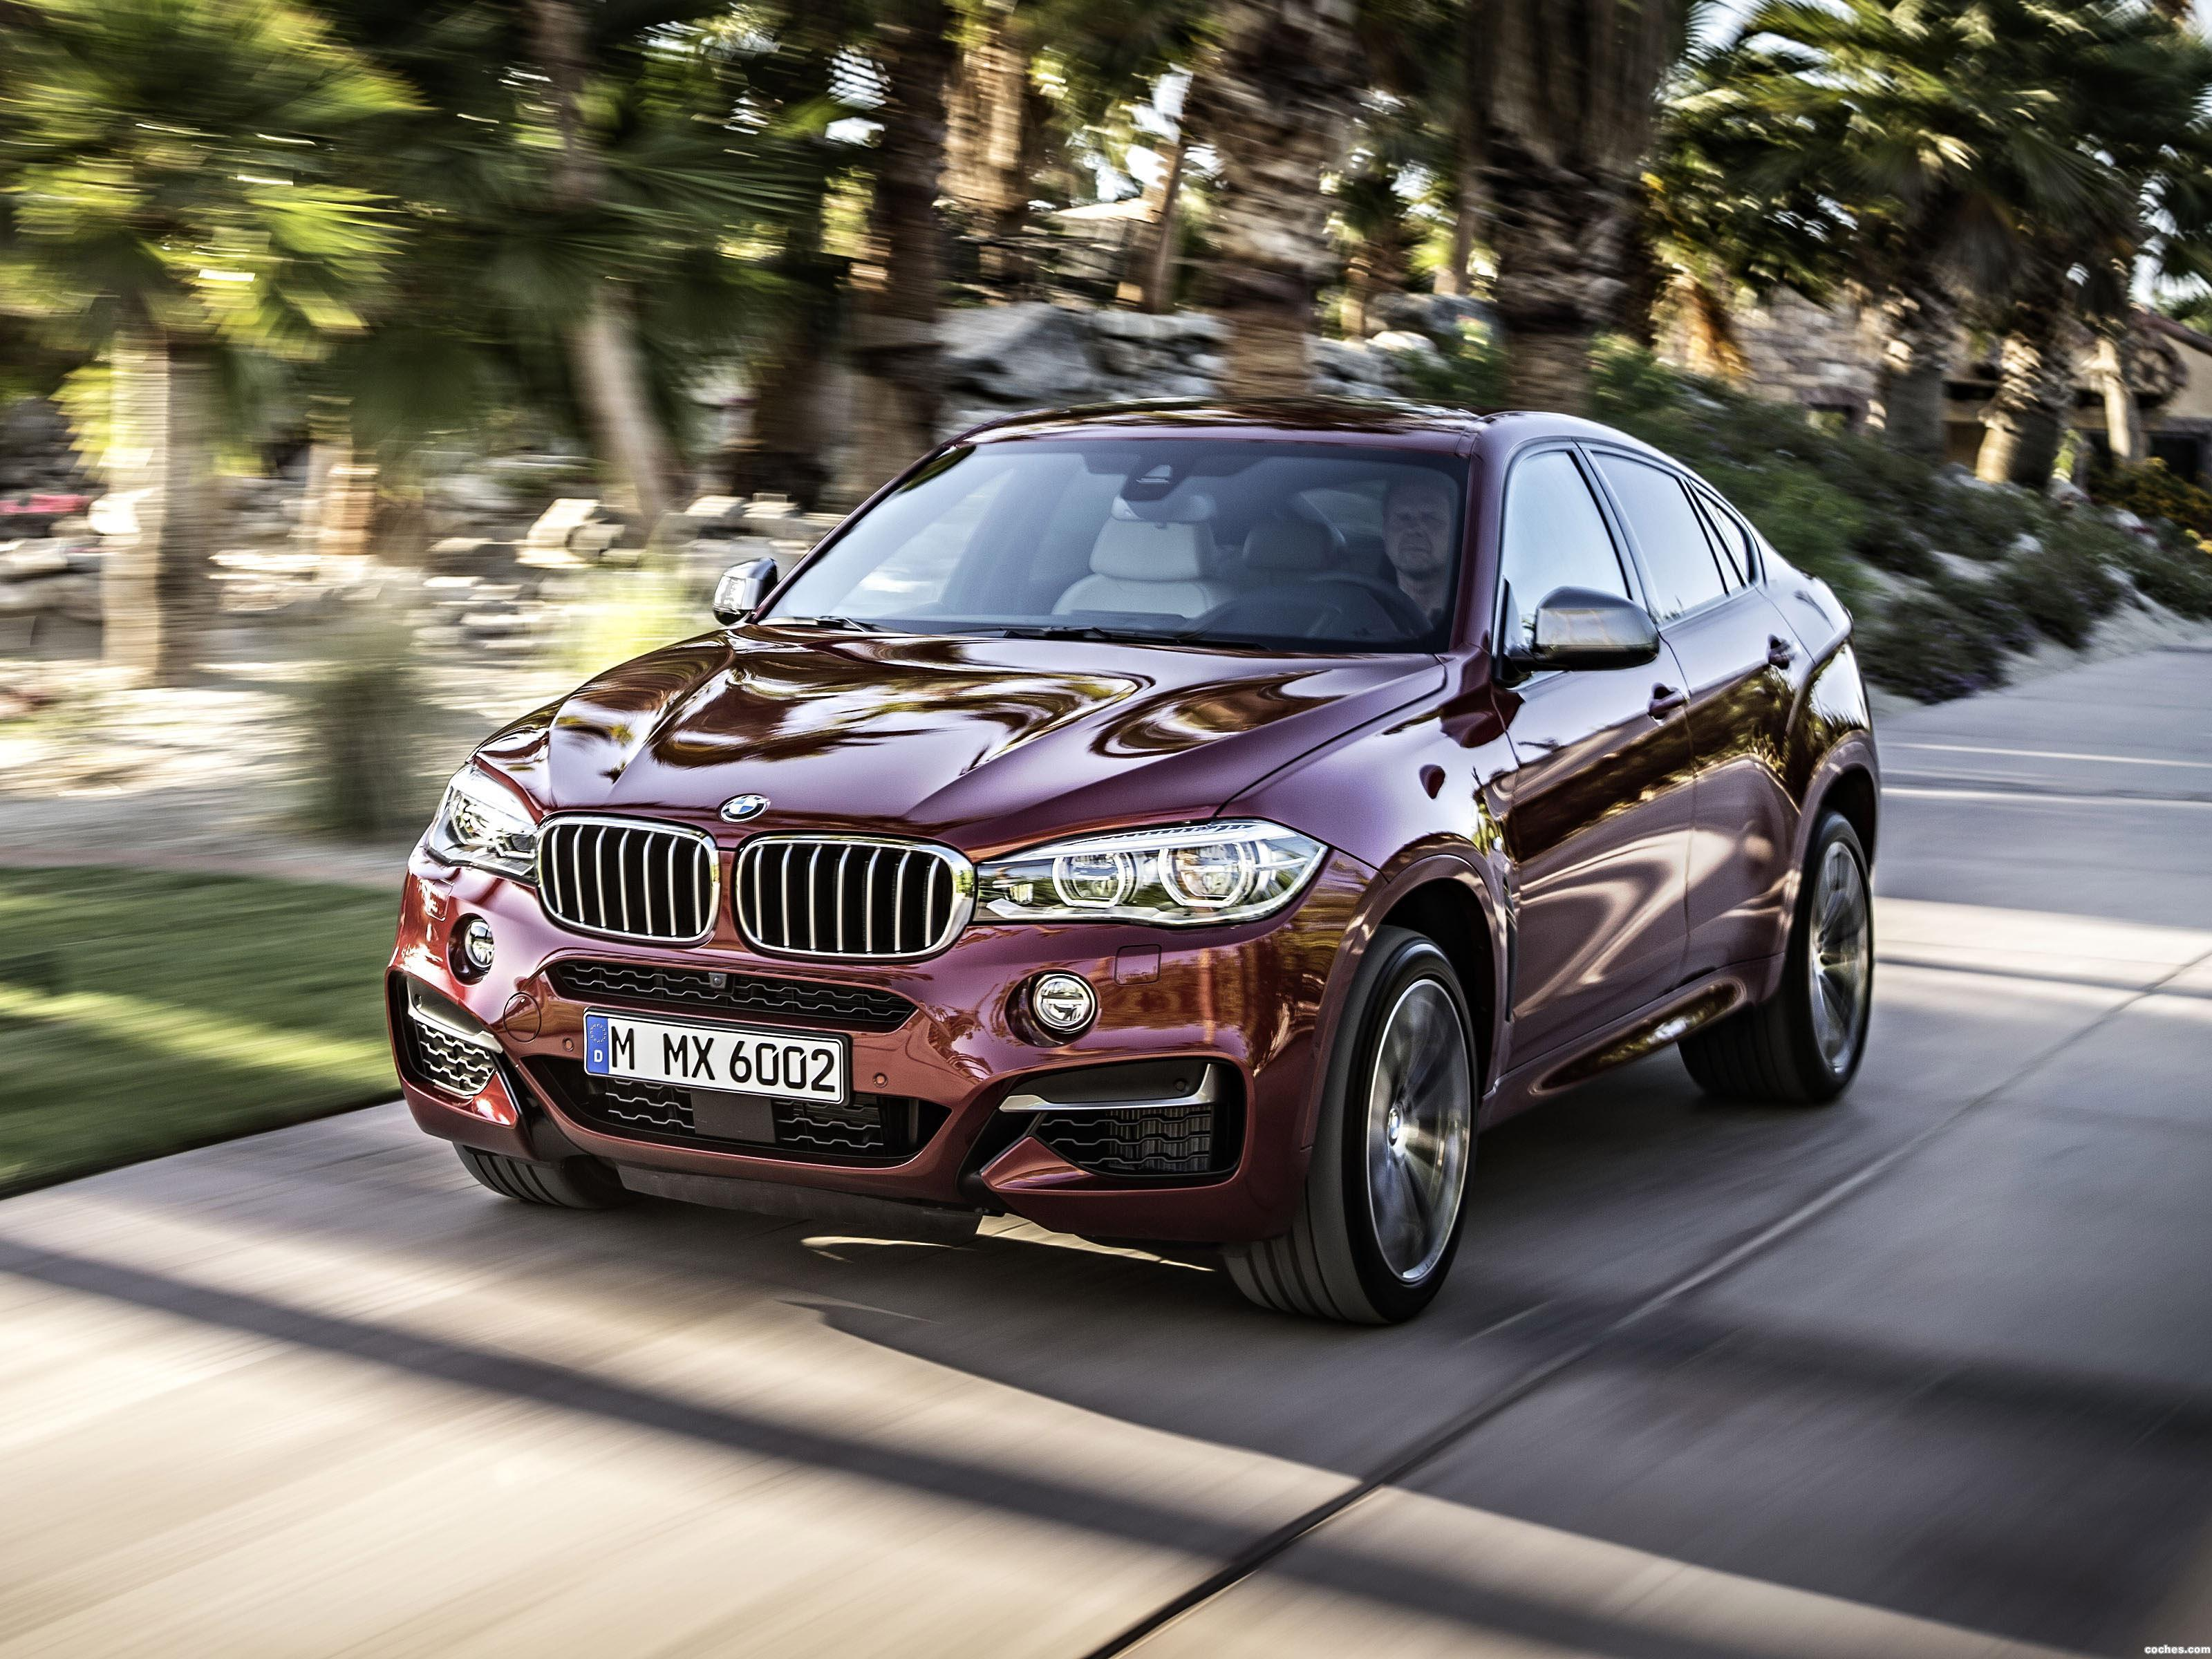 fotos de bmw x6 m50d f16 2014 foto 3. Black Bedroom Furniture Sets. Home Design Ideas